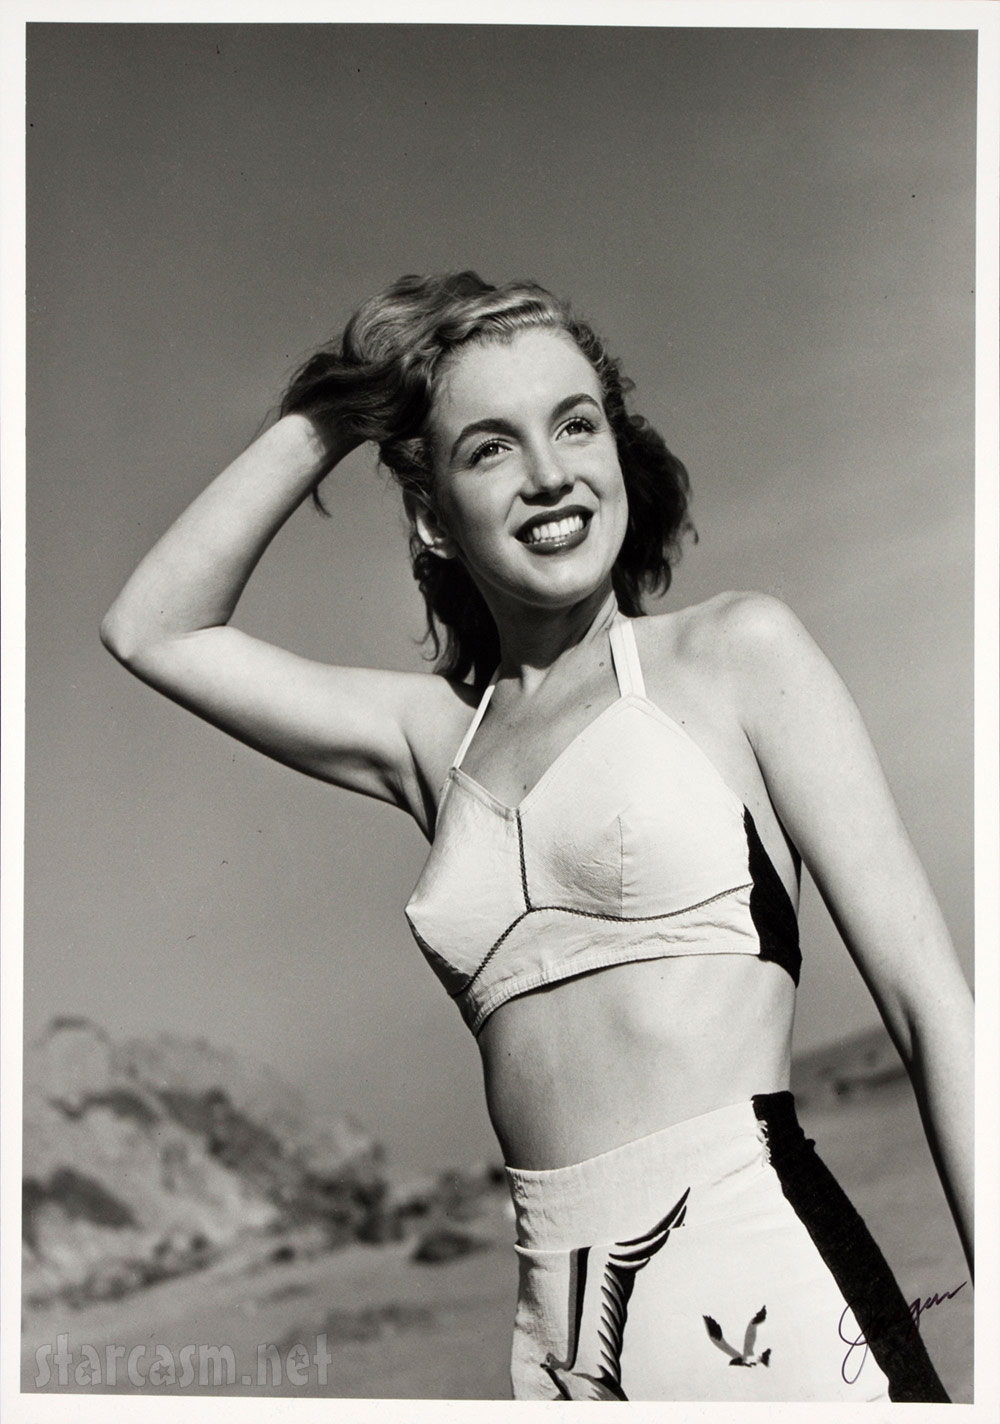 Norma Jeane Dougherty from 1946